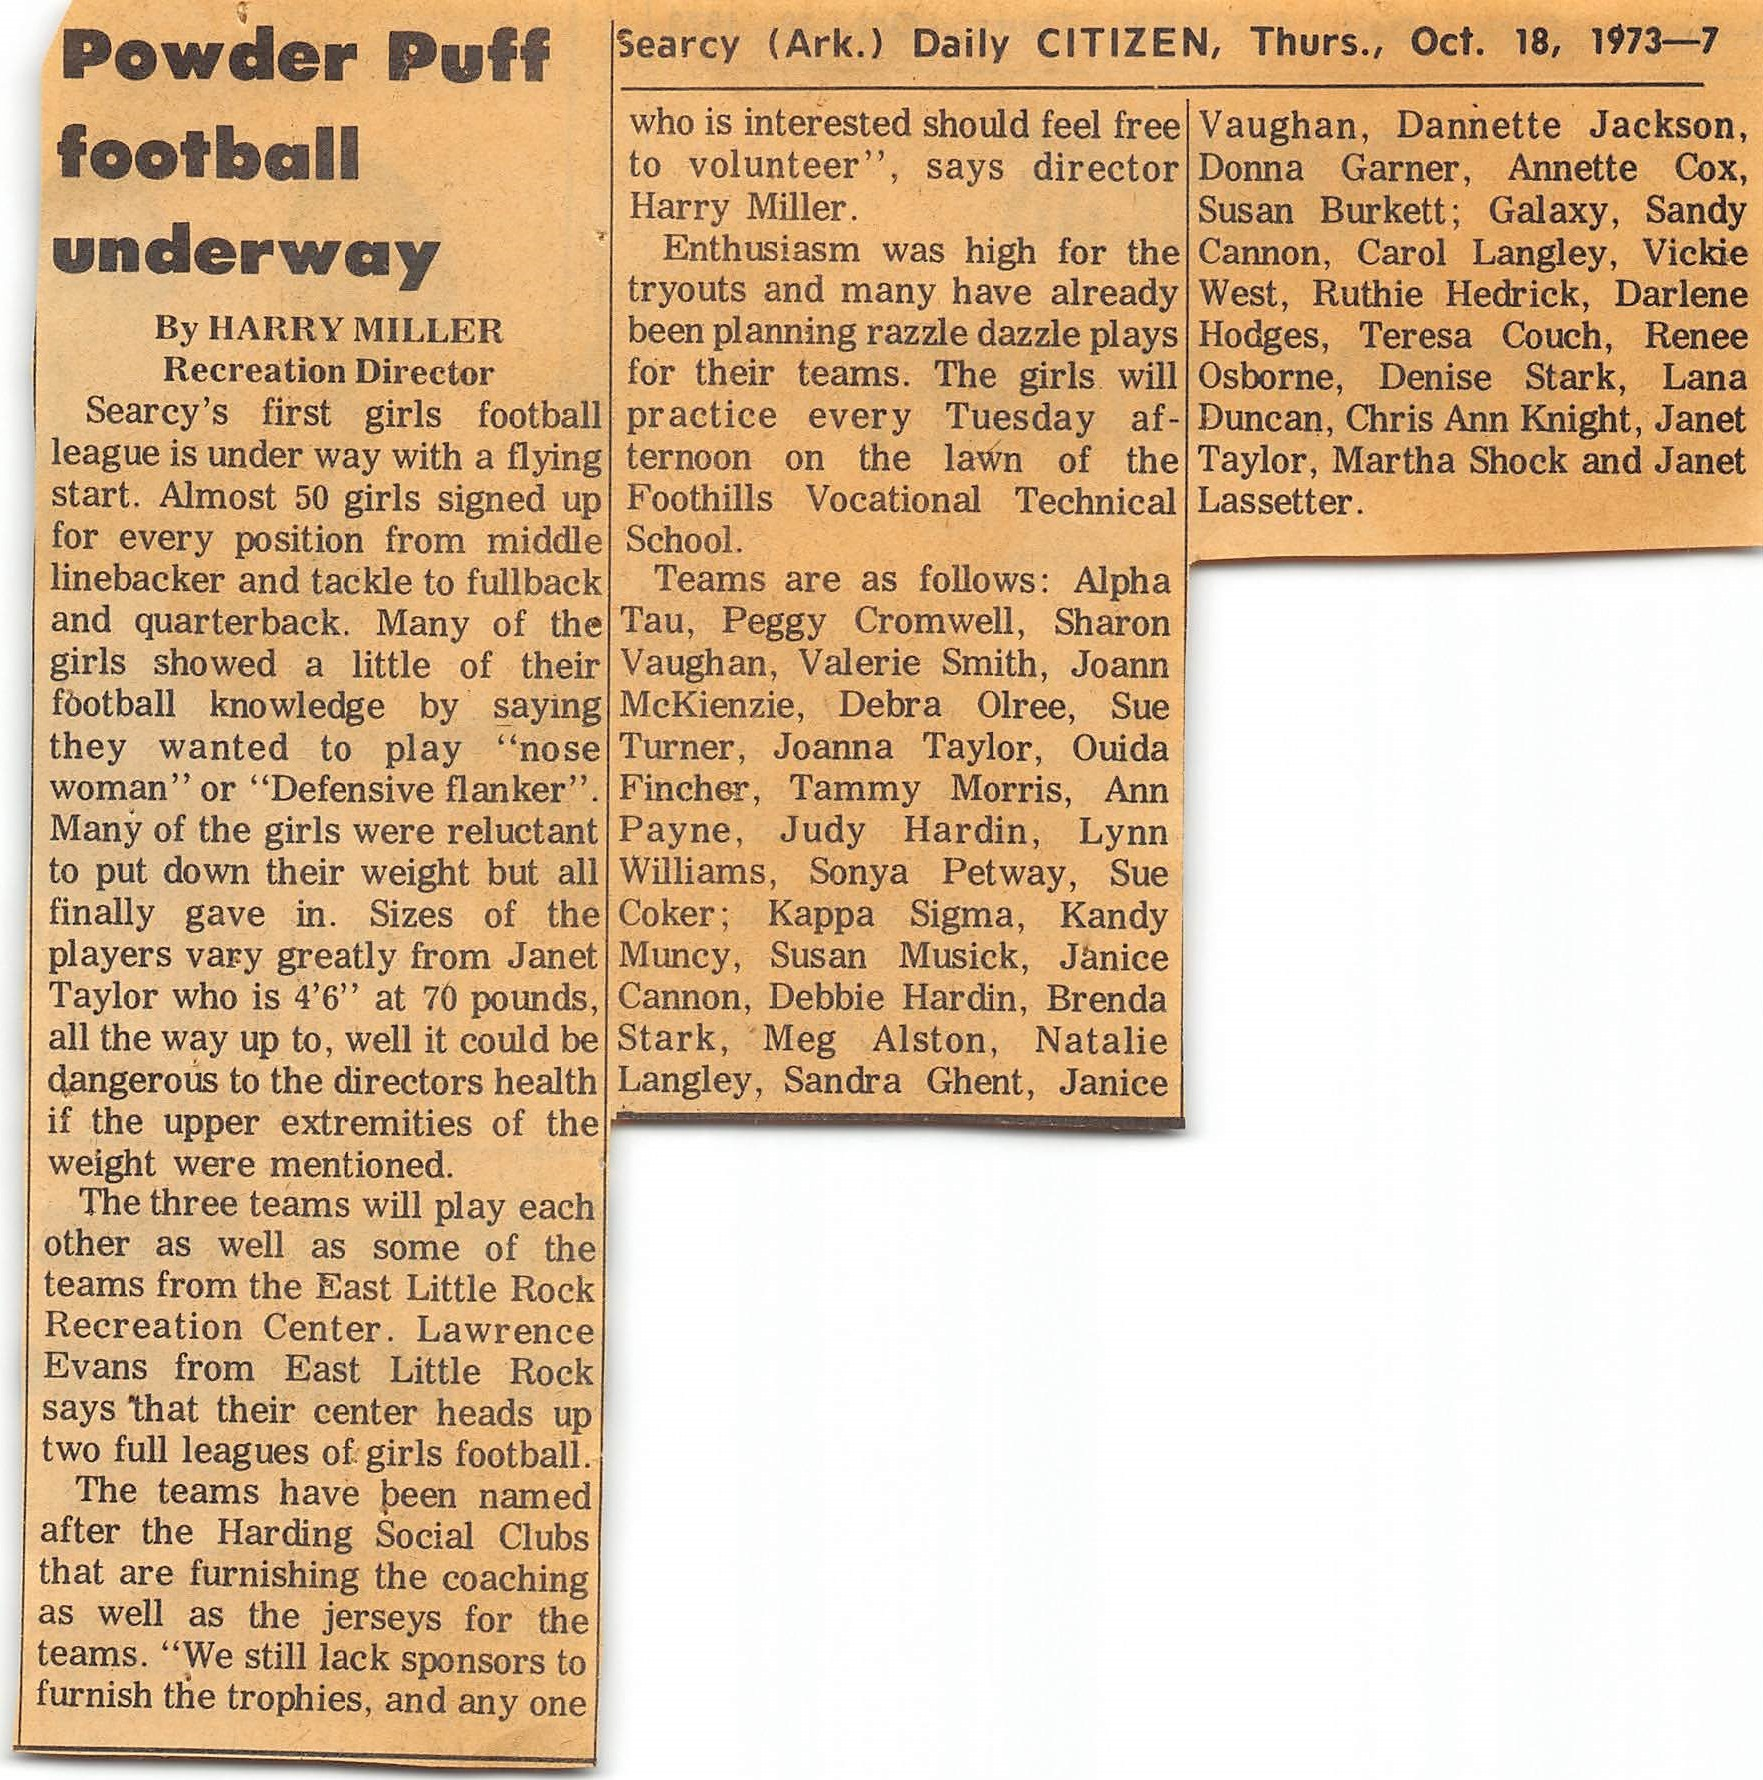 Girls football Searcy AR Harry Miller article 1973